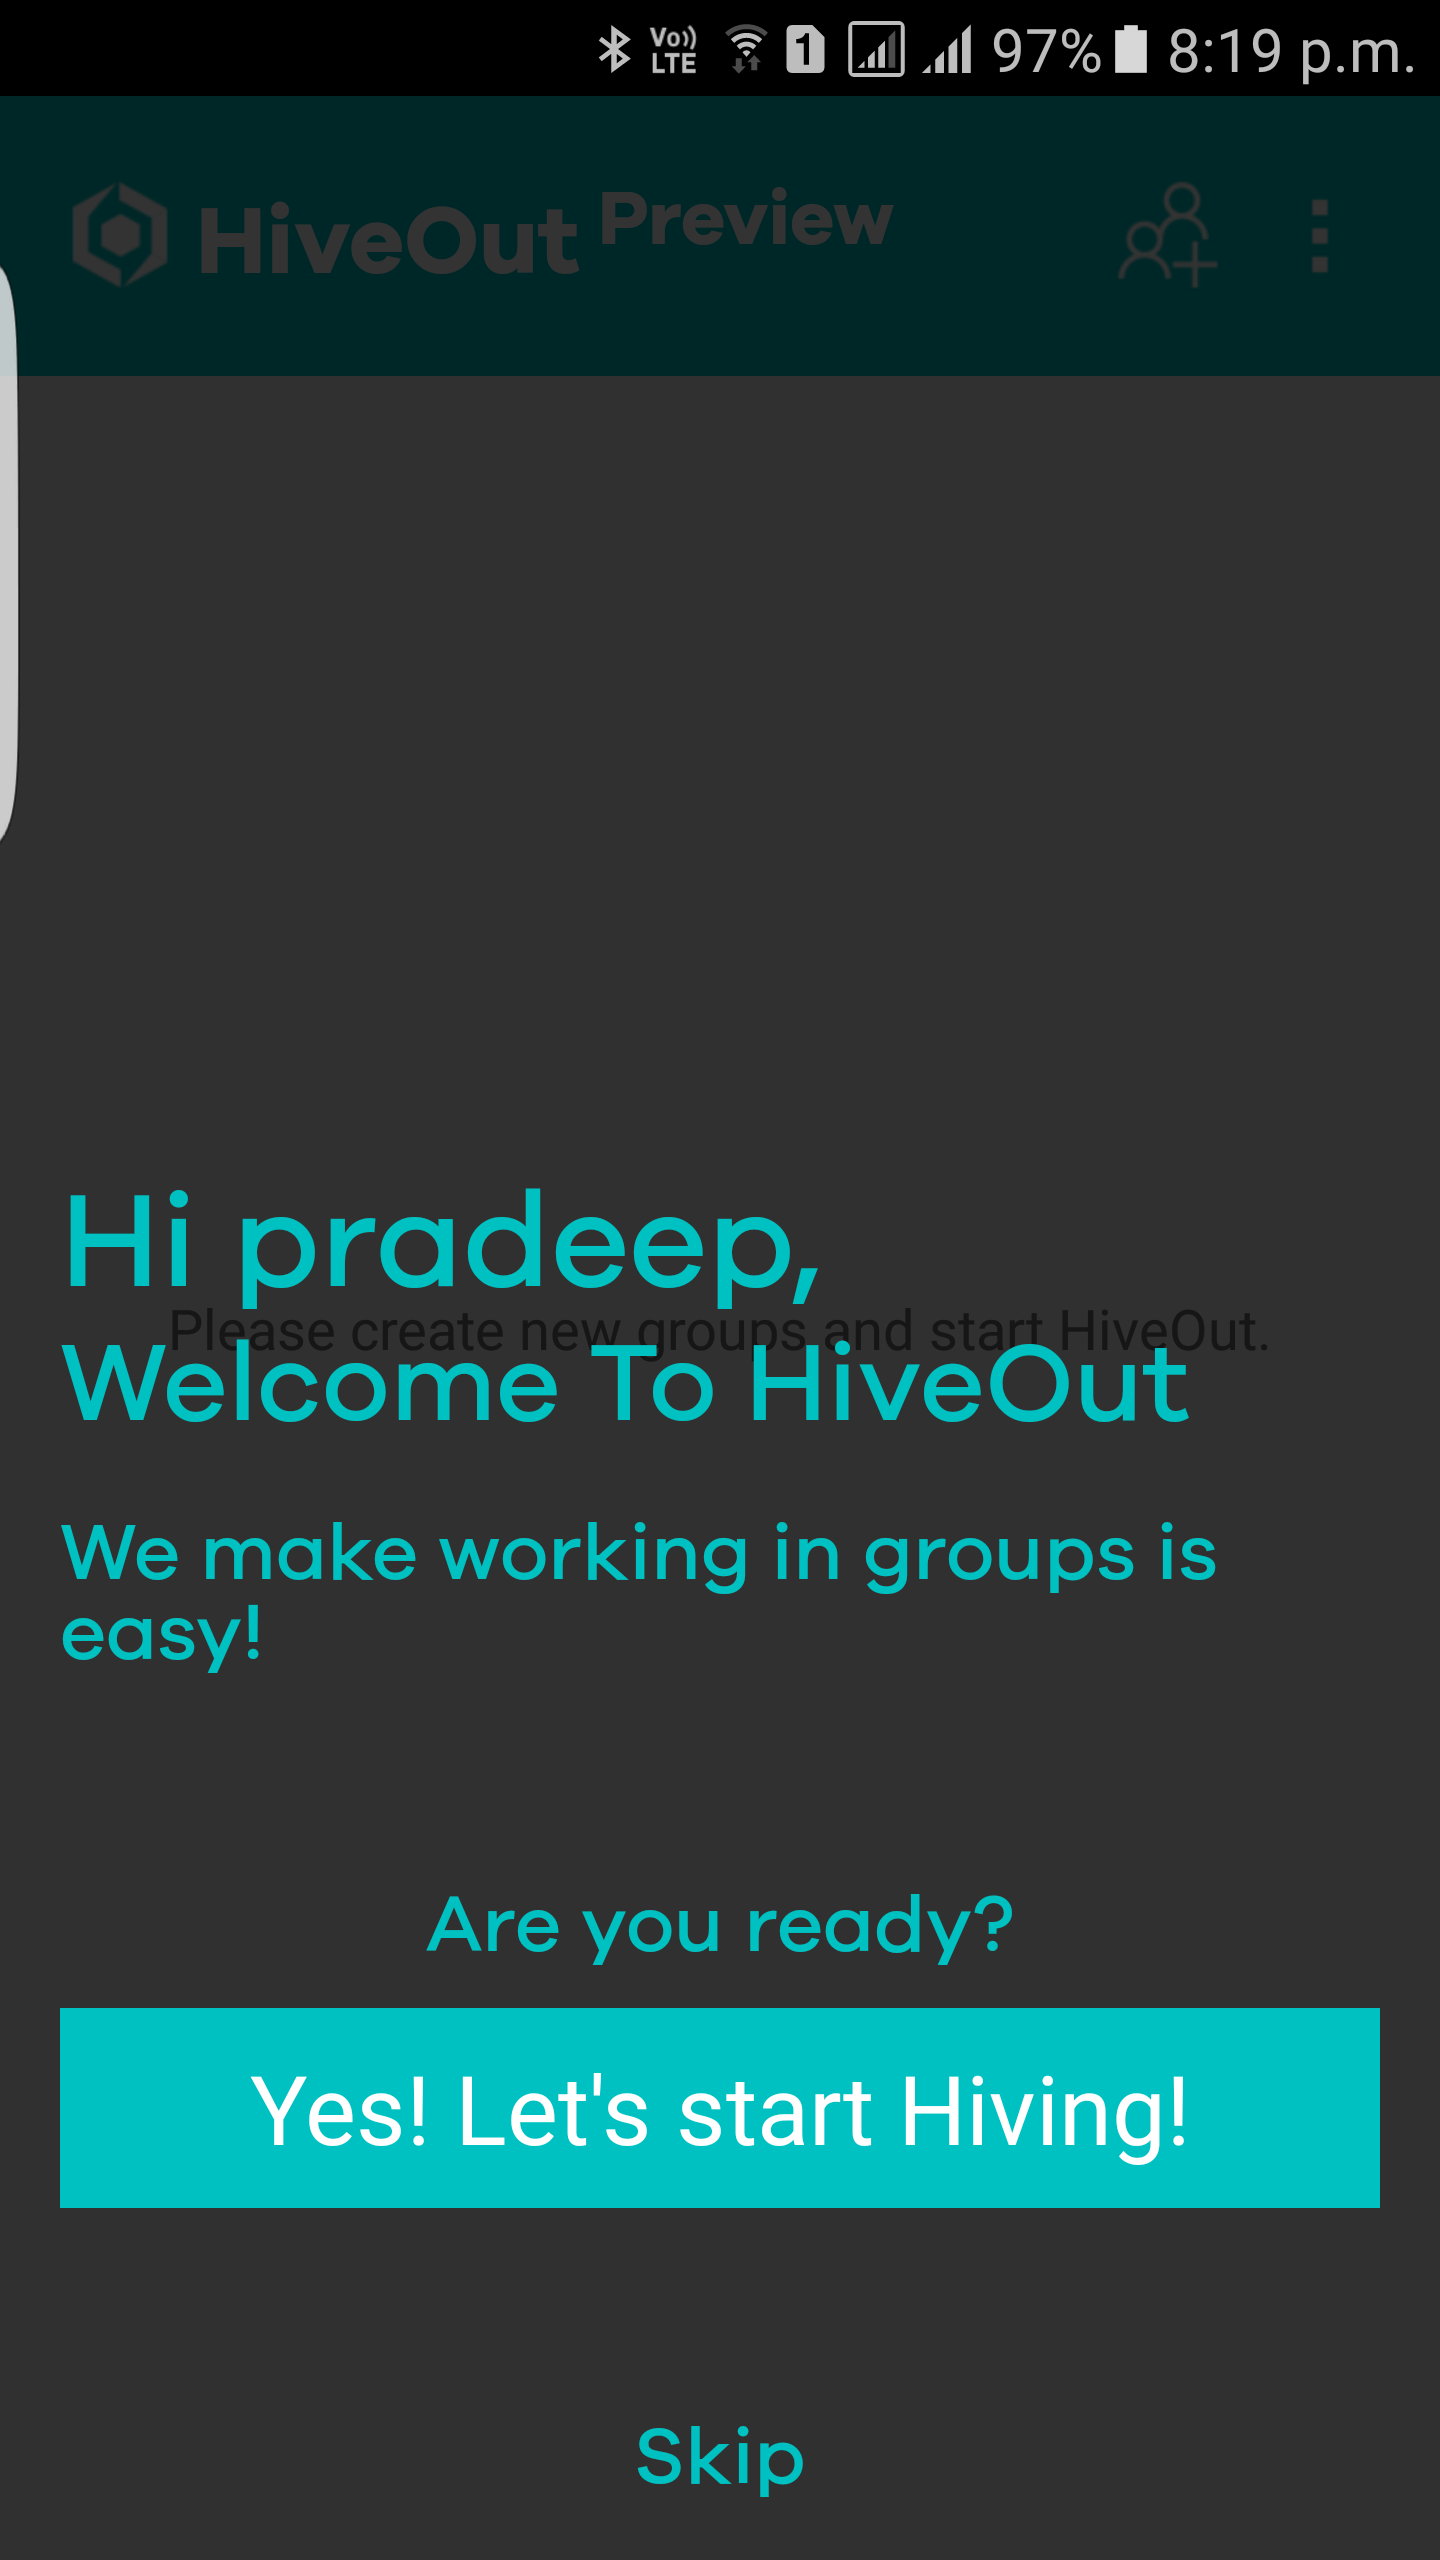 HiveOut group collaboration app officially launched on Microsoft Garage 1